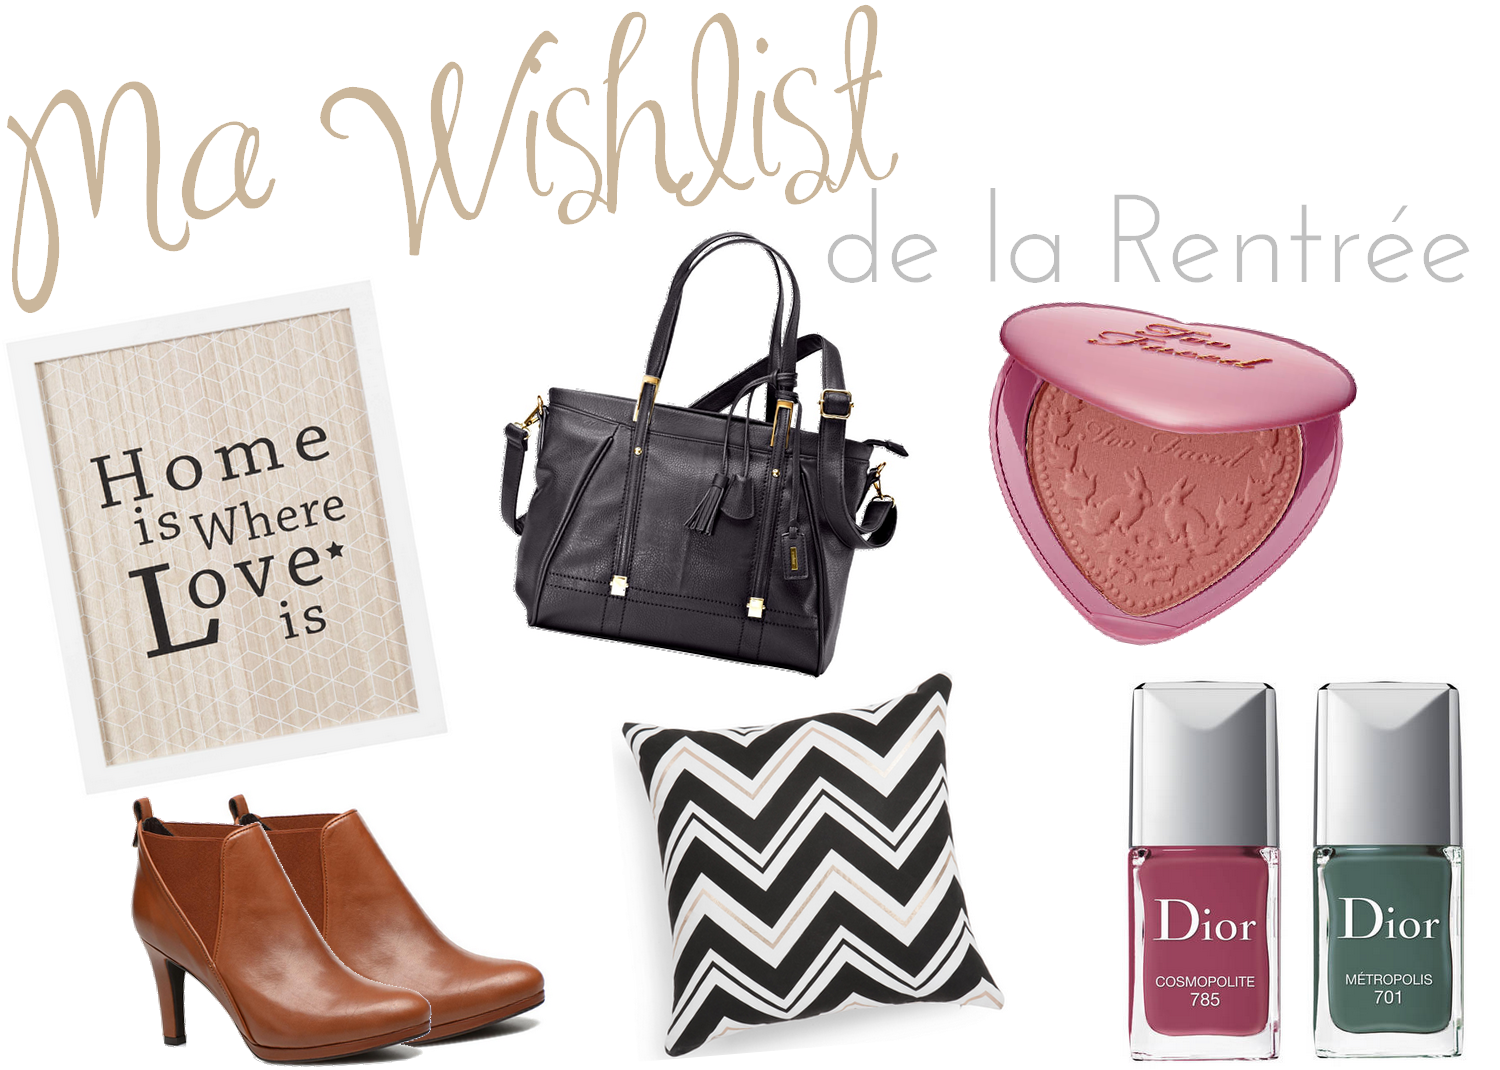 http://www.dreamingsmoothly.com/2015/08/ma-wishlist-de-rentree.html